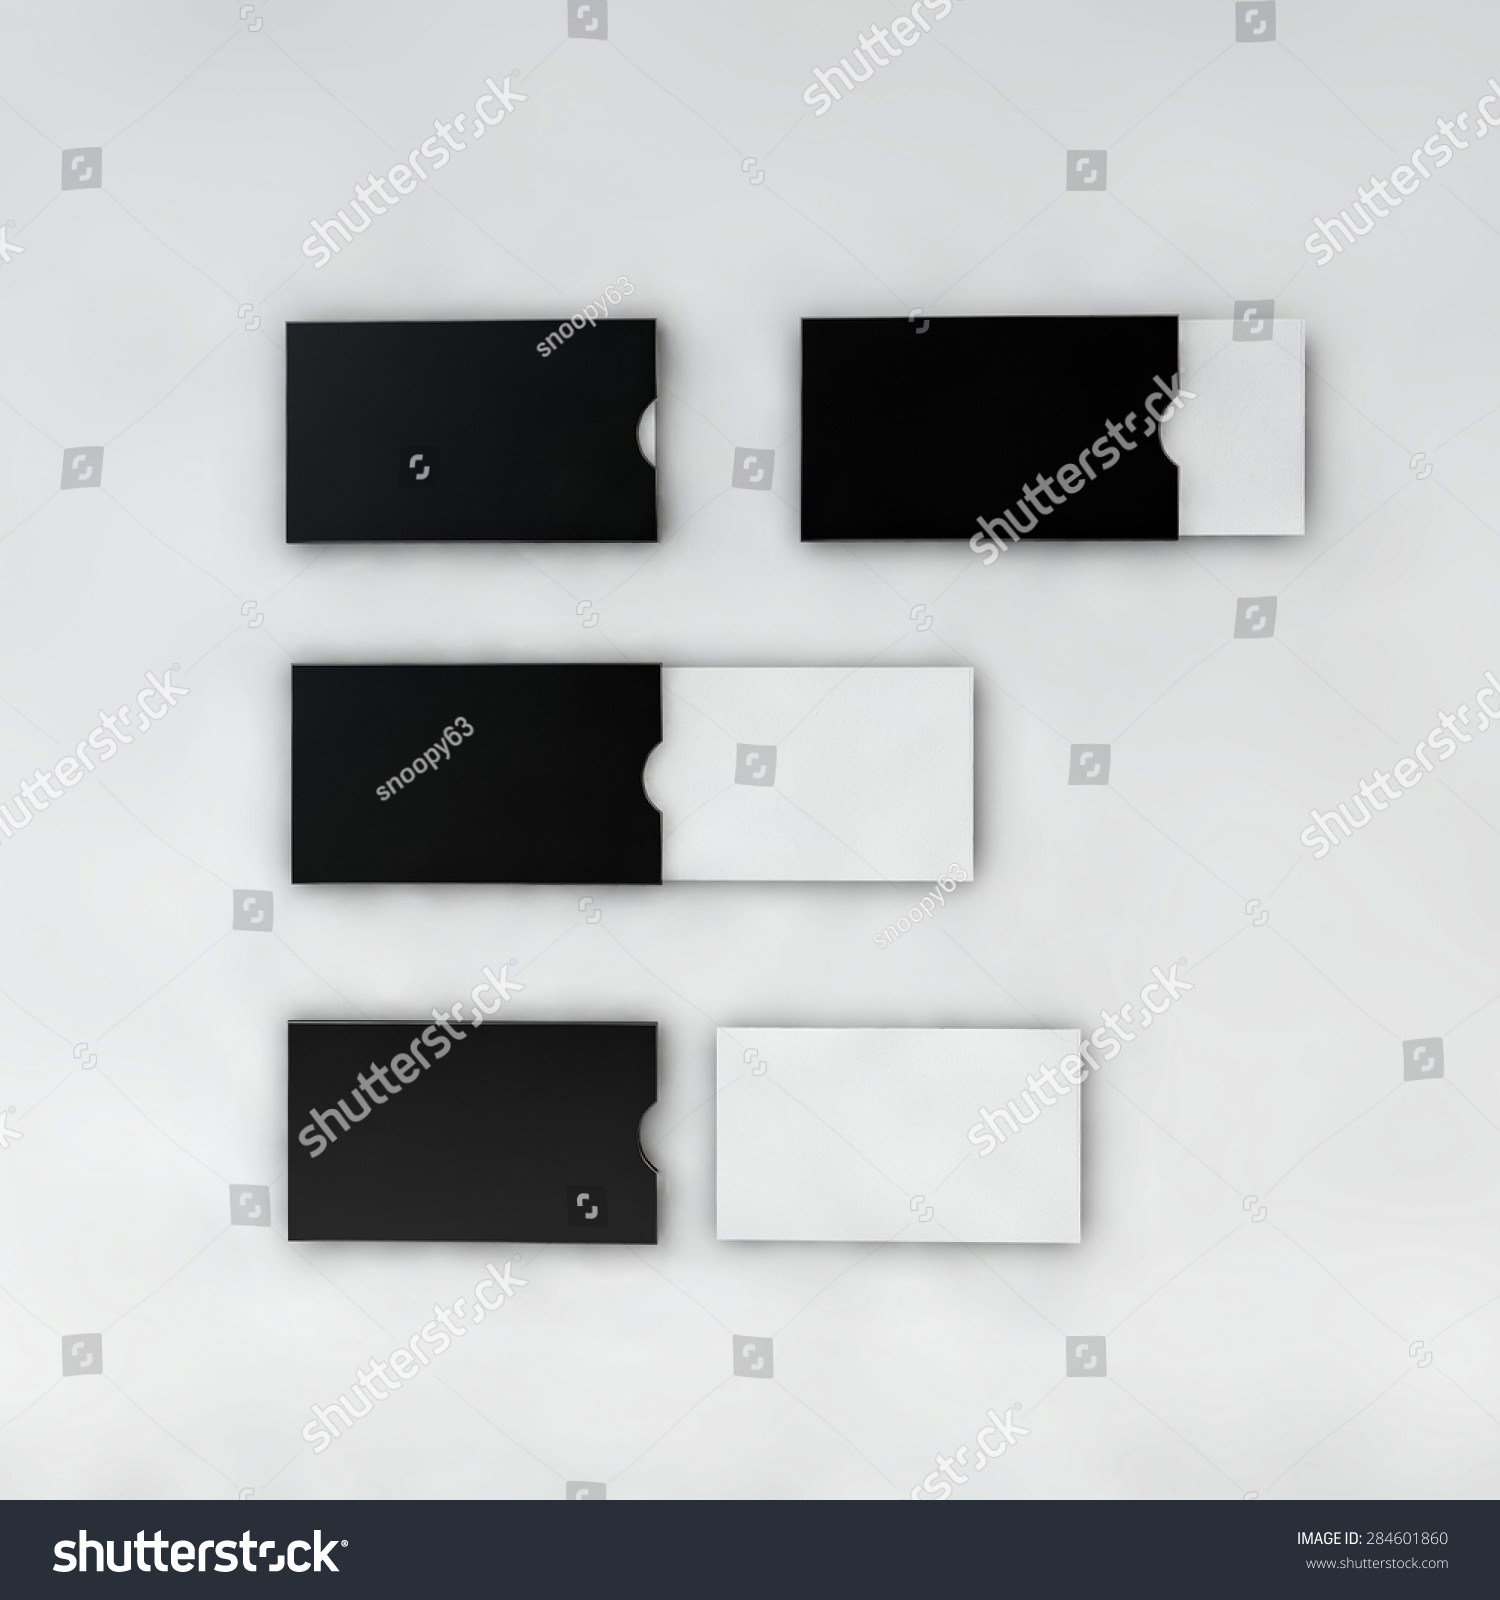 Mock Business Card Holder Black White Stock Illustration 284601860 ...